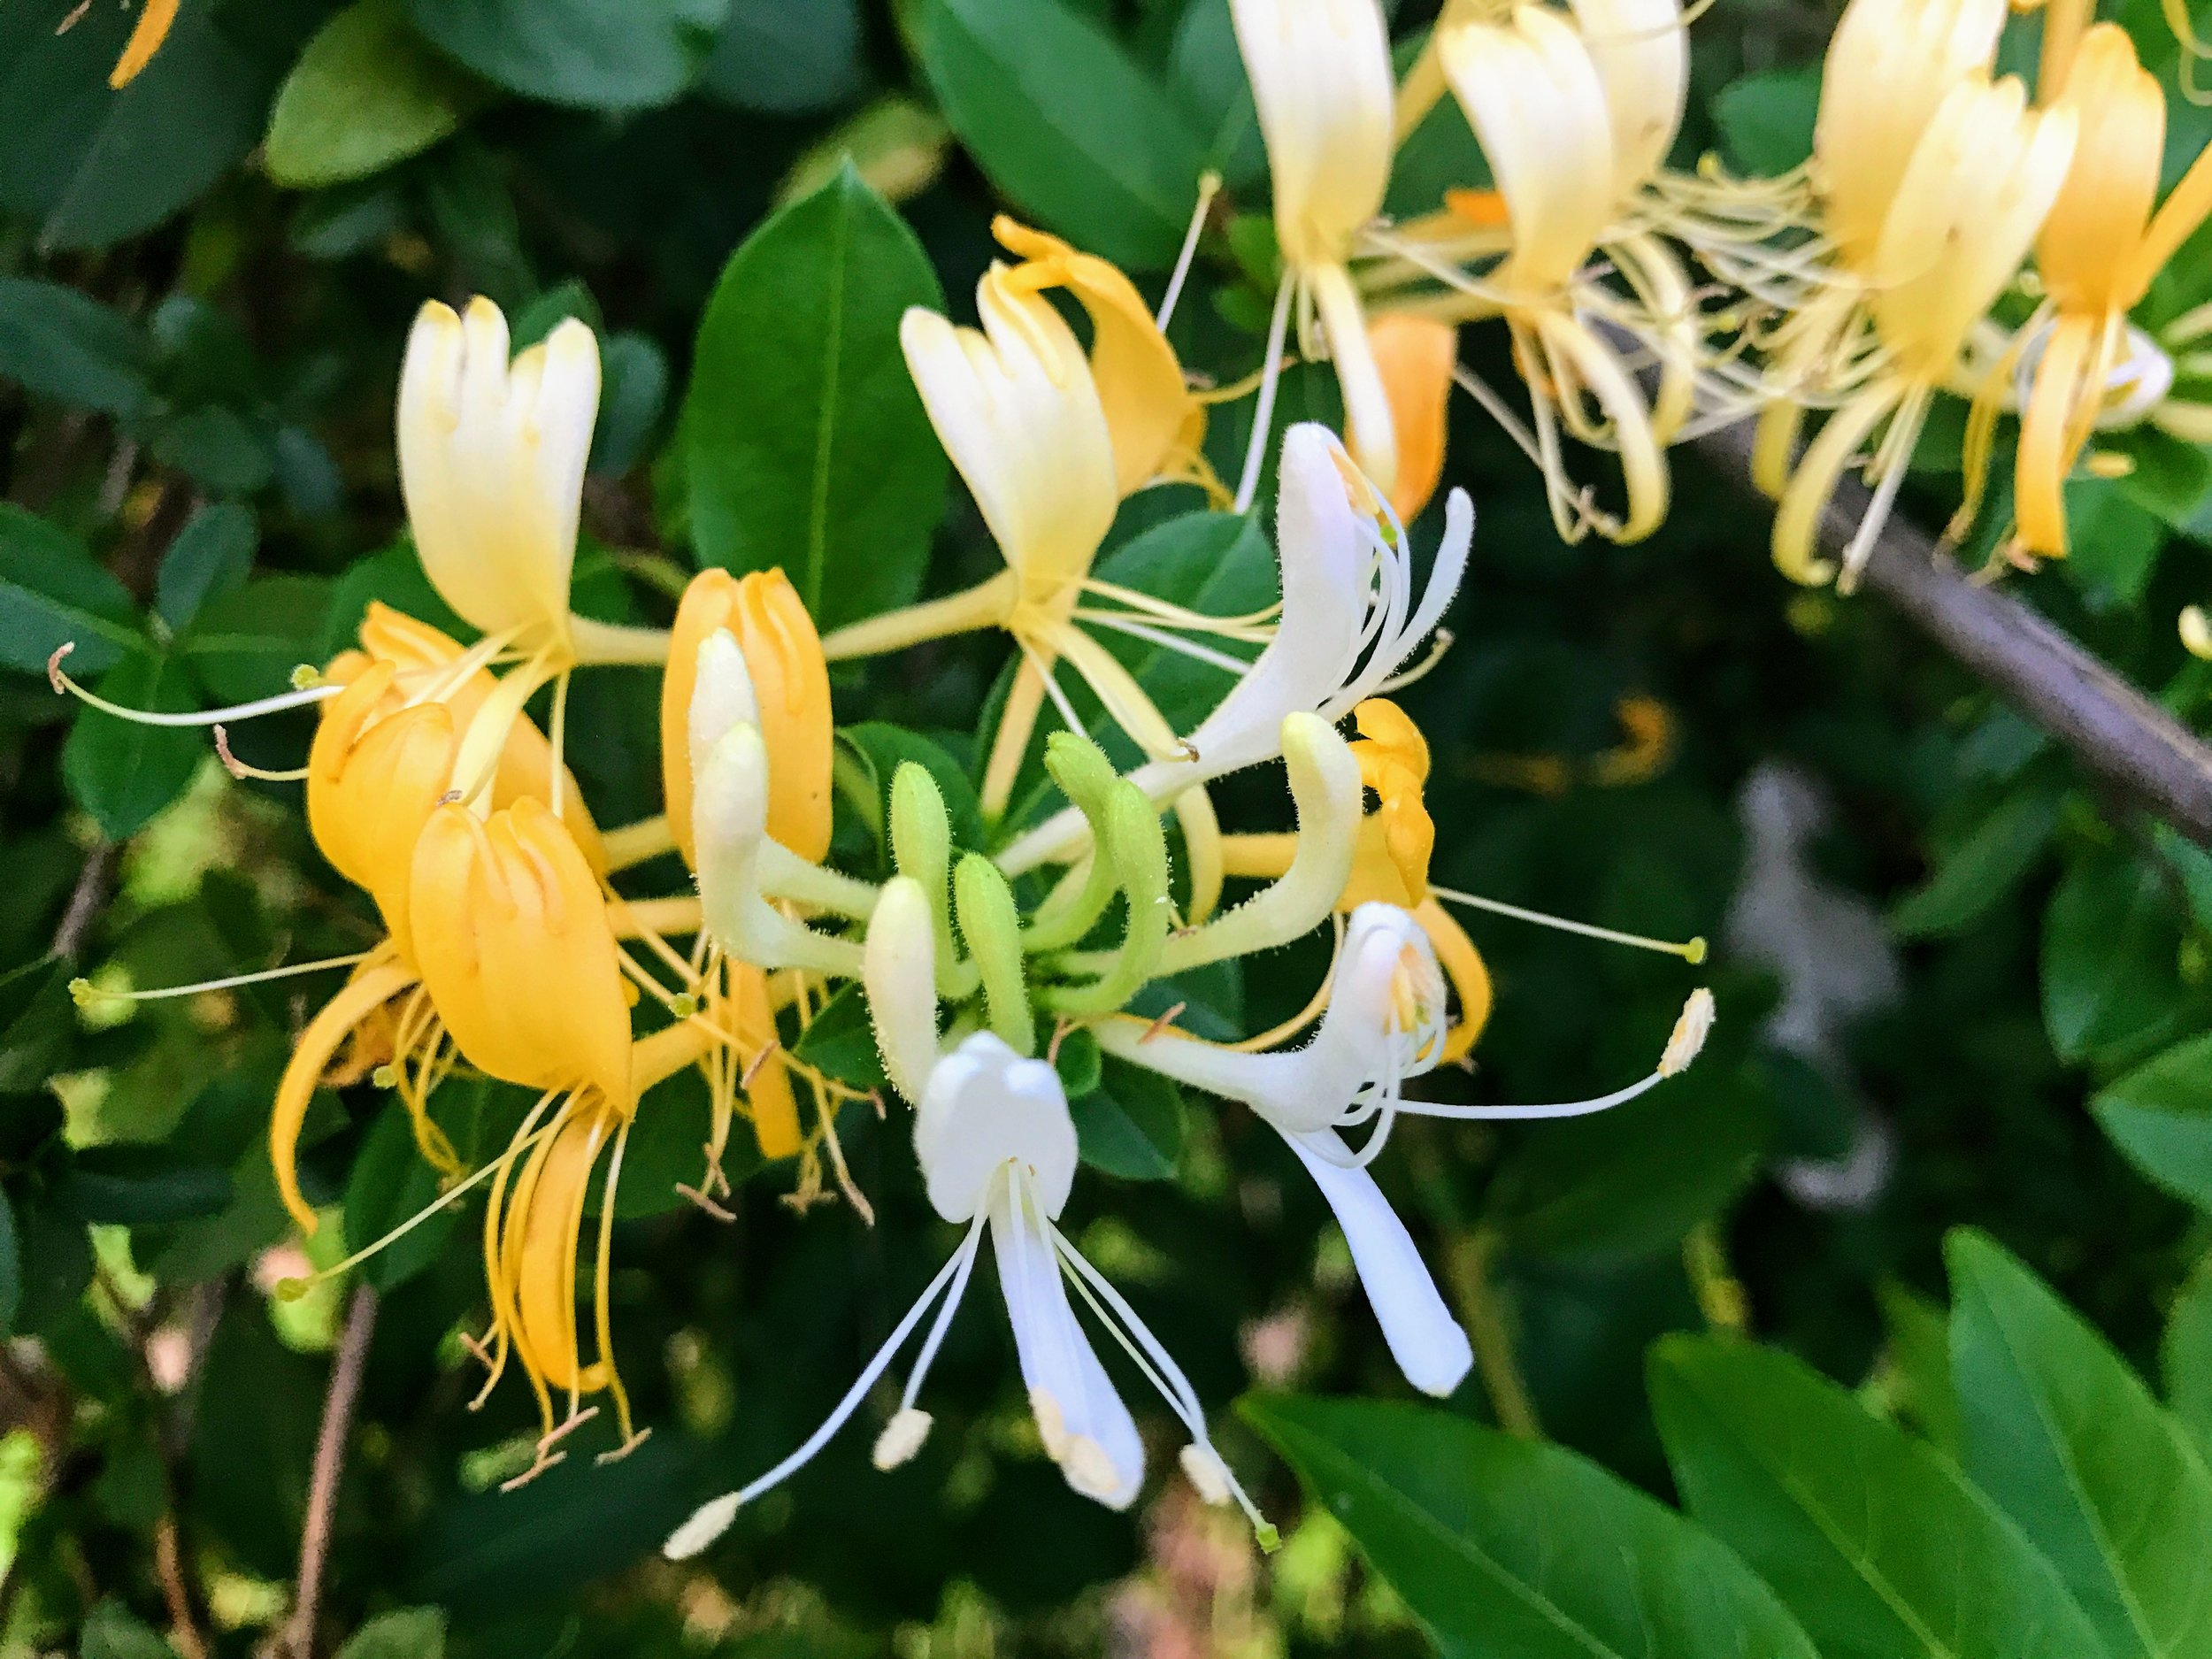 First taste of honeysuckle for the year